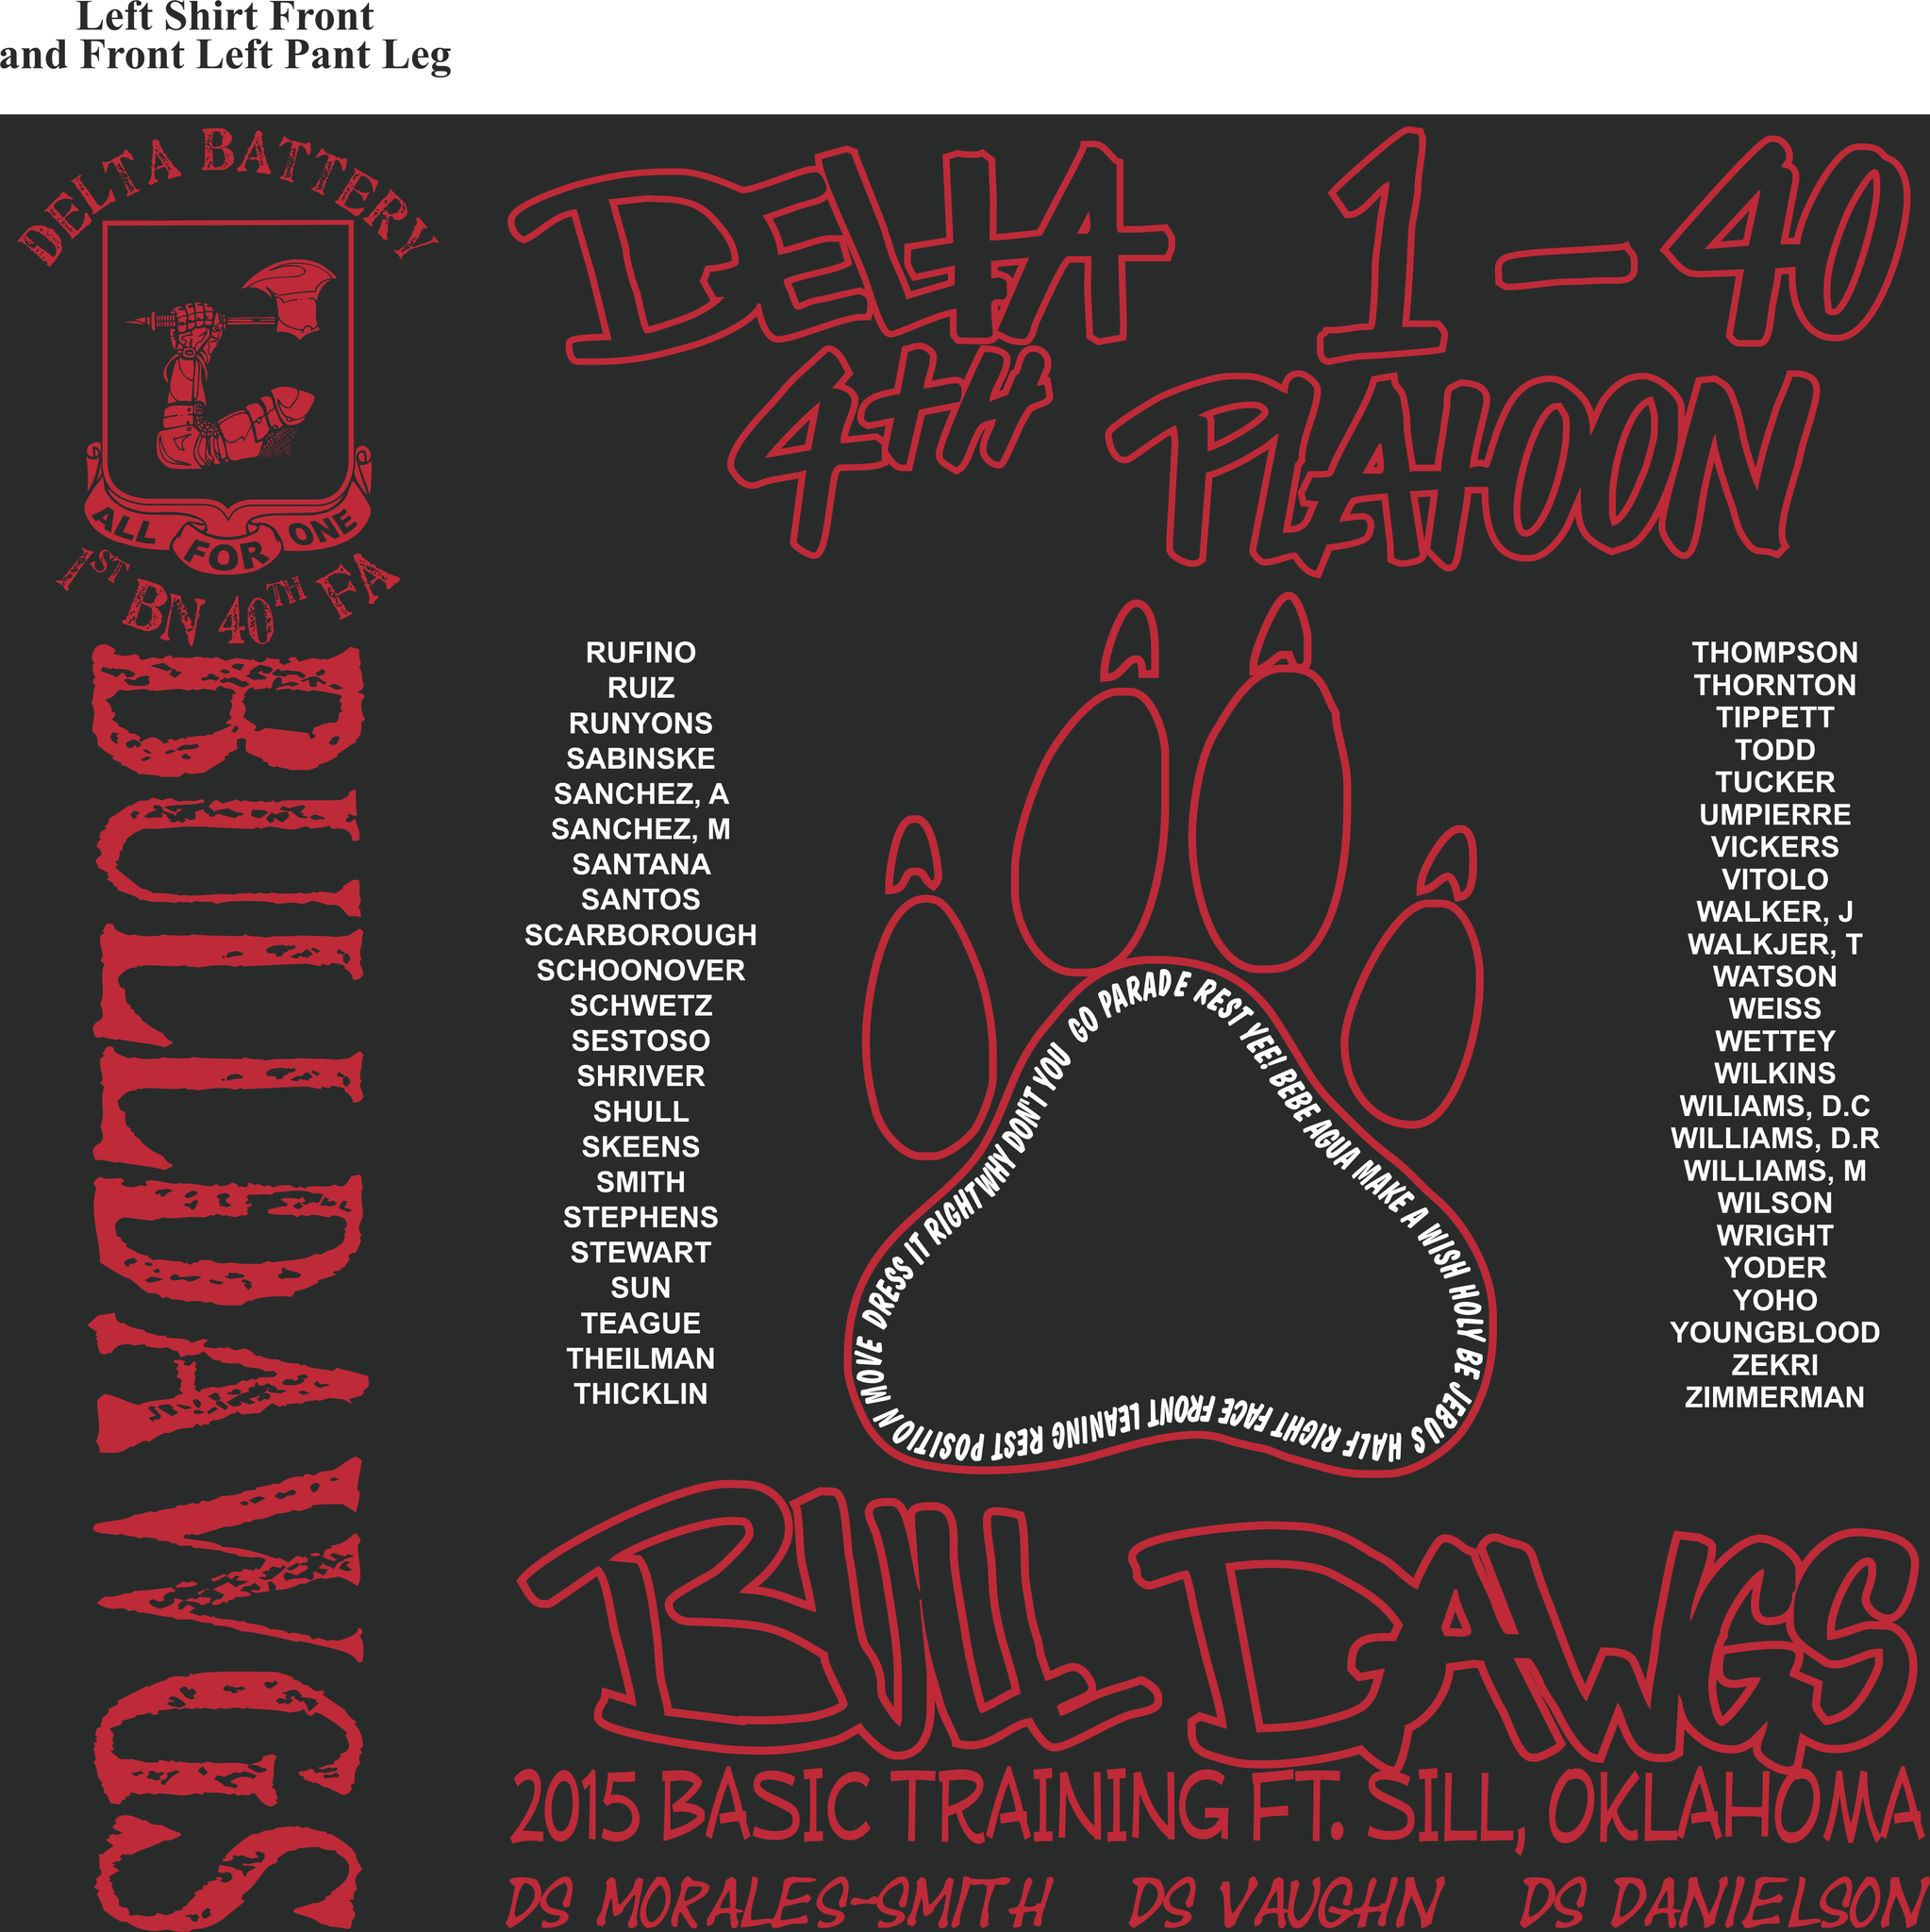 Platoon Shirts Delta 1st 40th BULLDAWGS MAR 2015